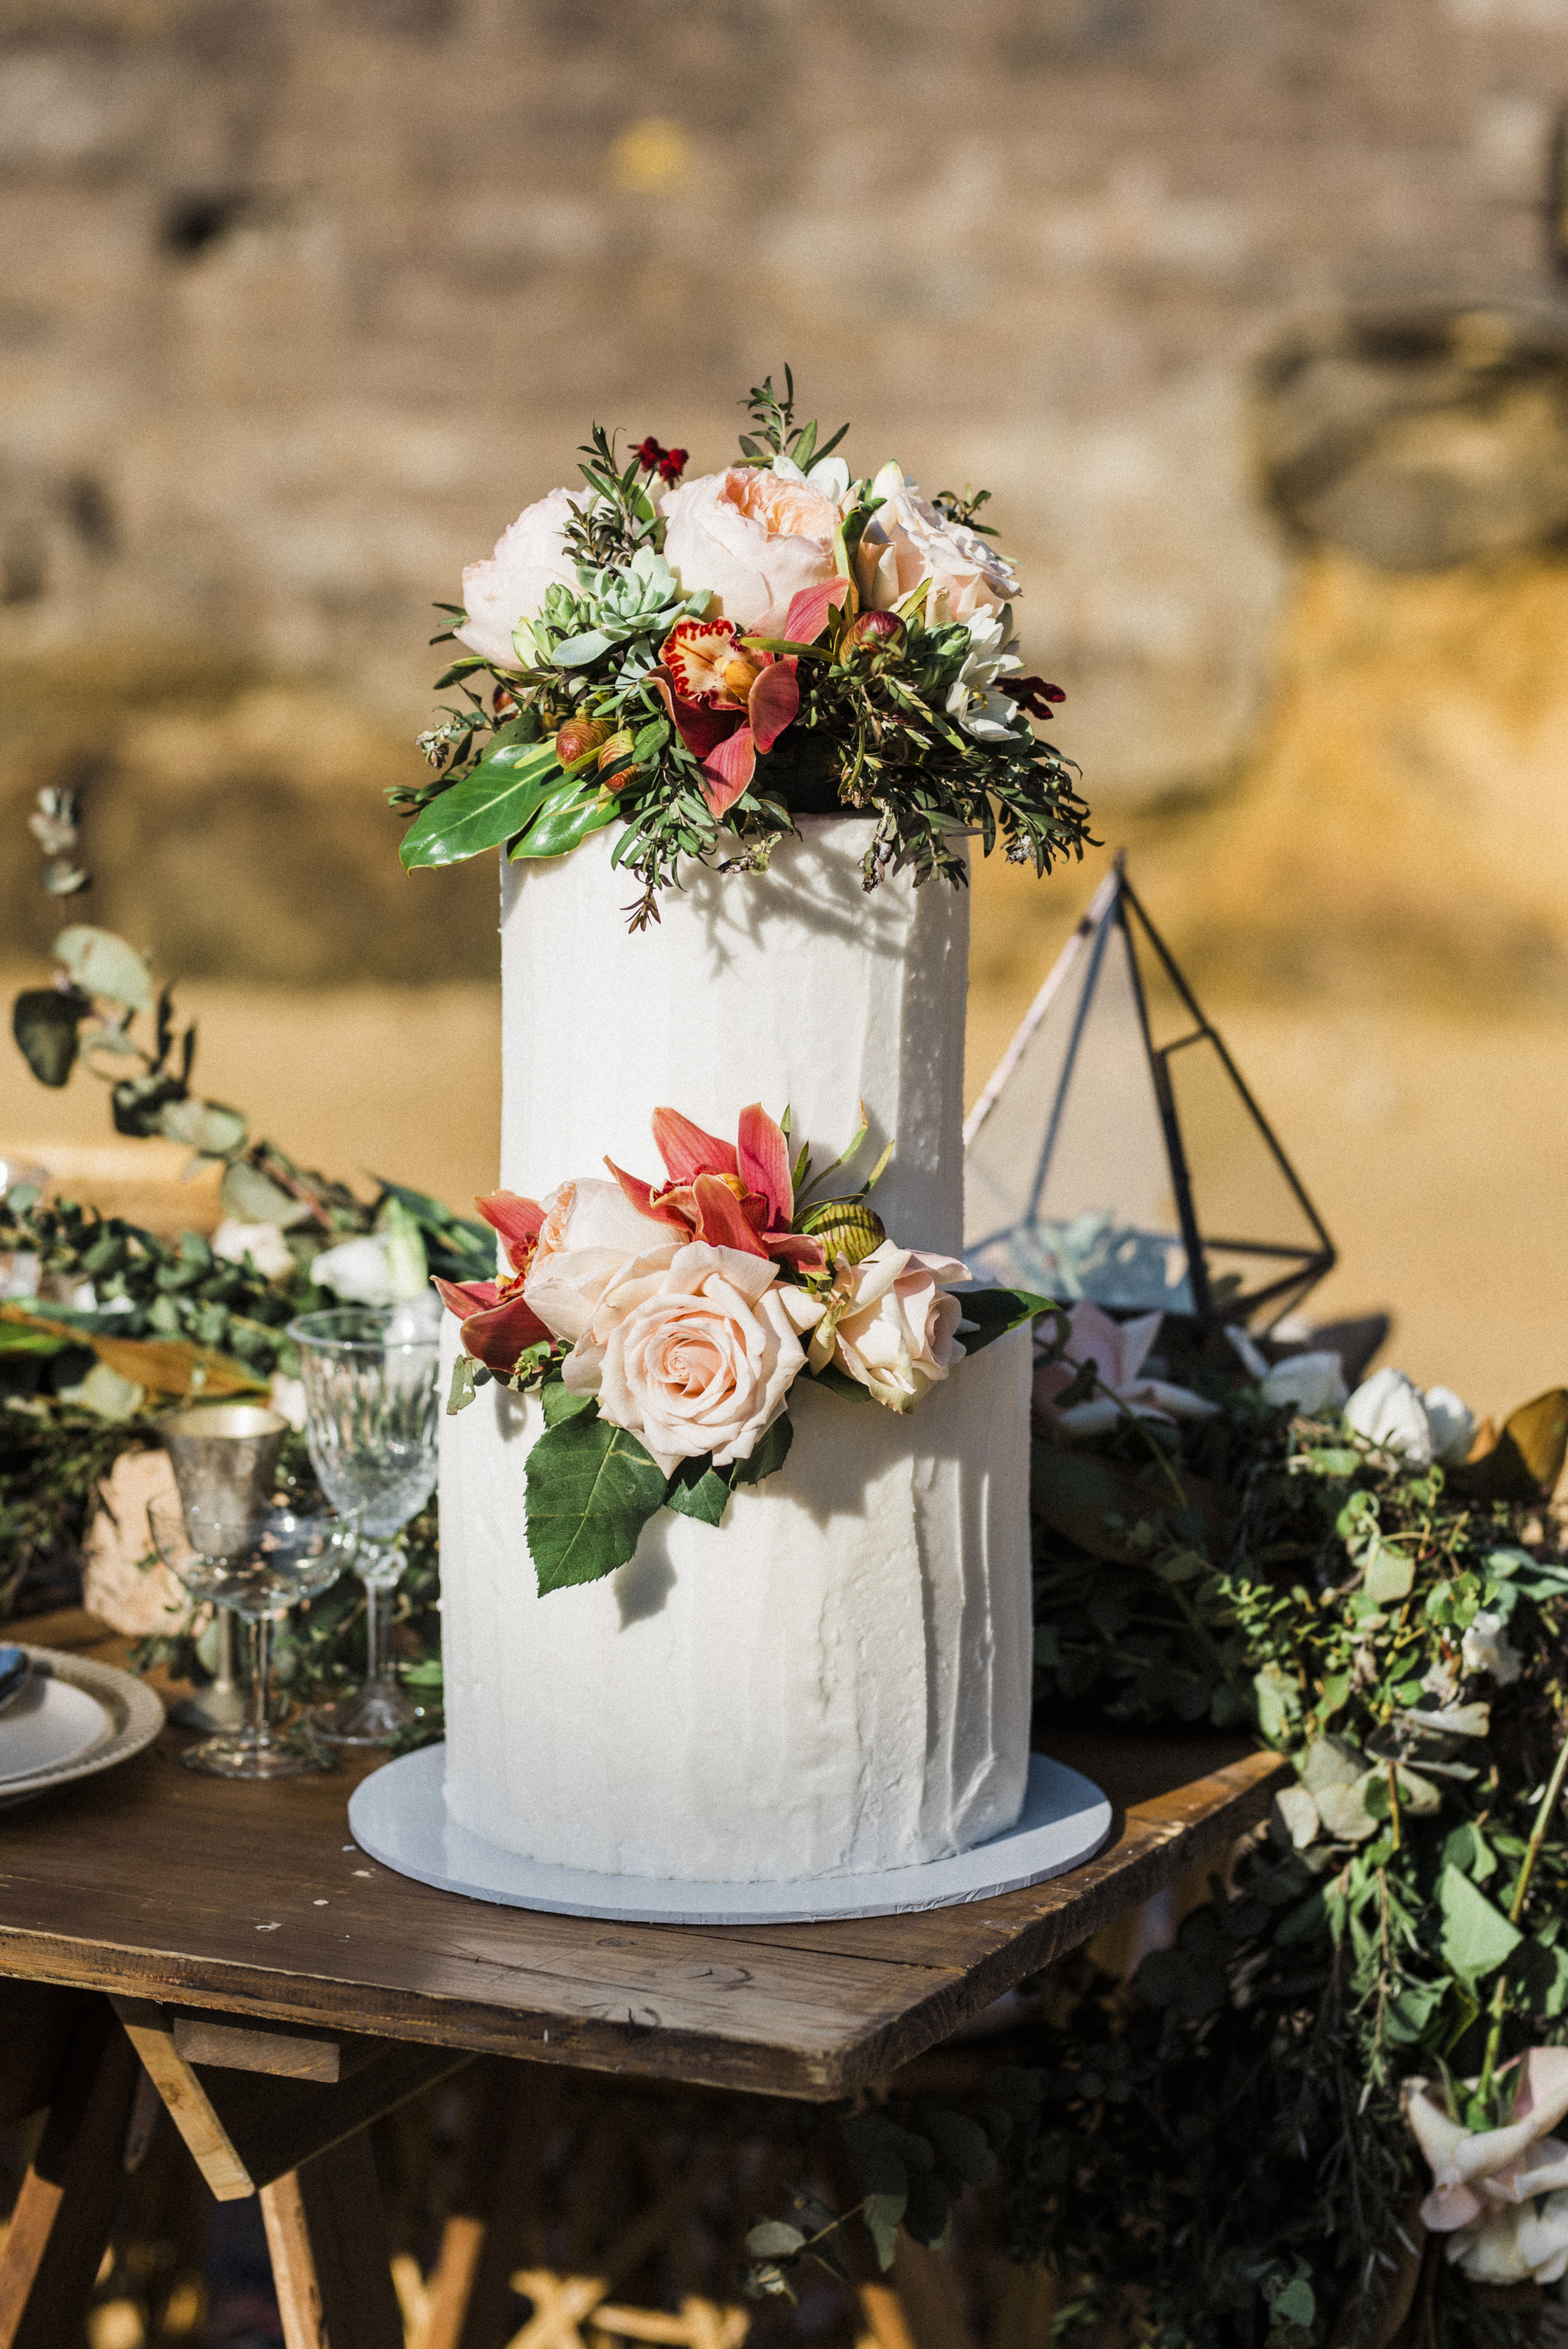 Admirable 44 Wedding Cakes With Fresh Flowers Martha Stewart Weddings Home Interior And Landscaping Ologienasavecom